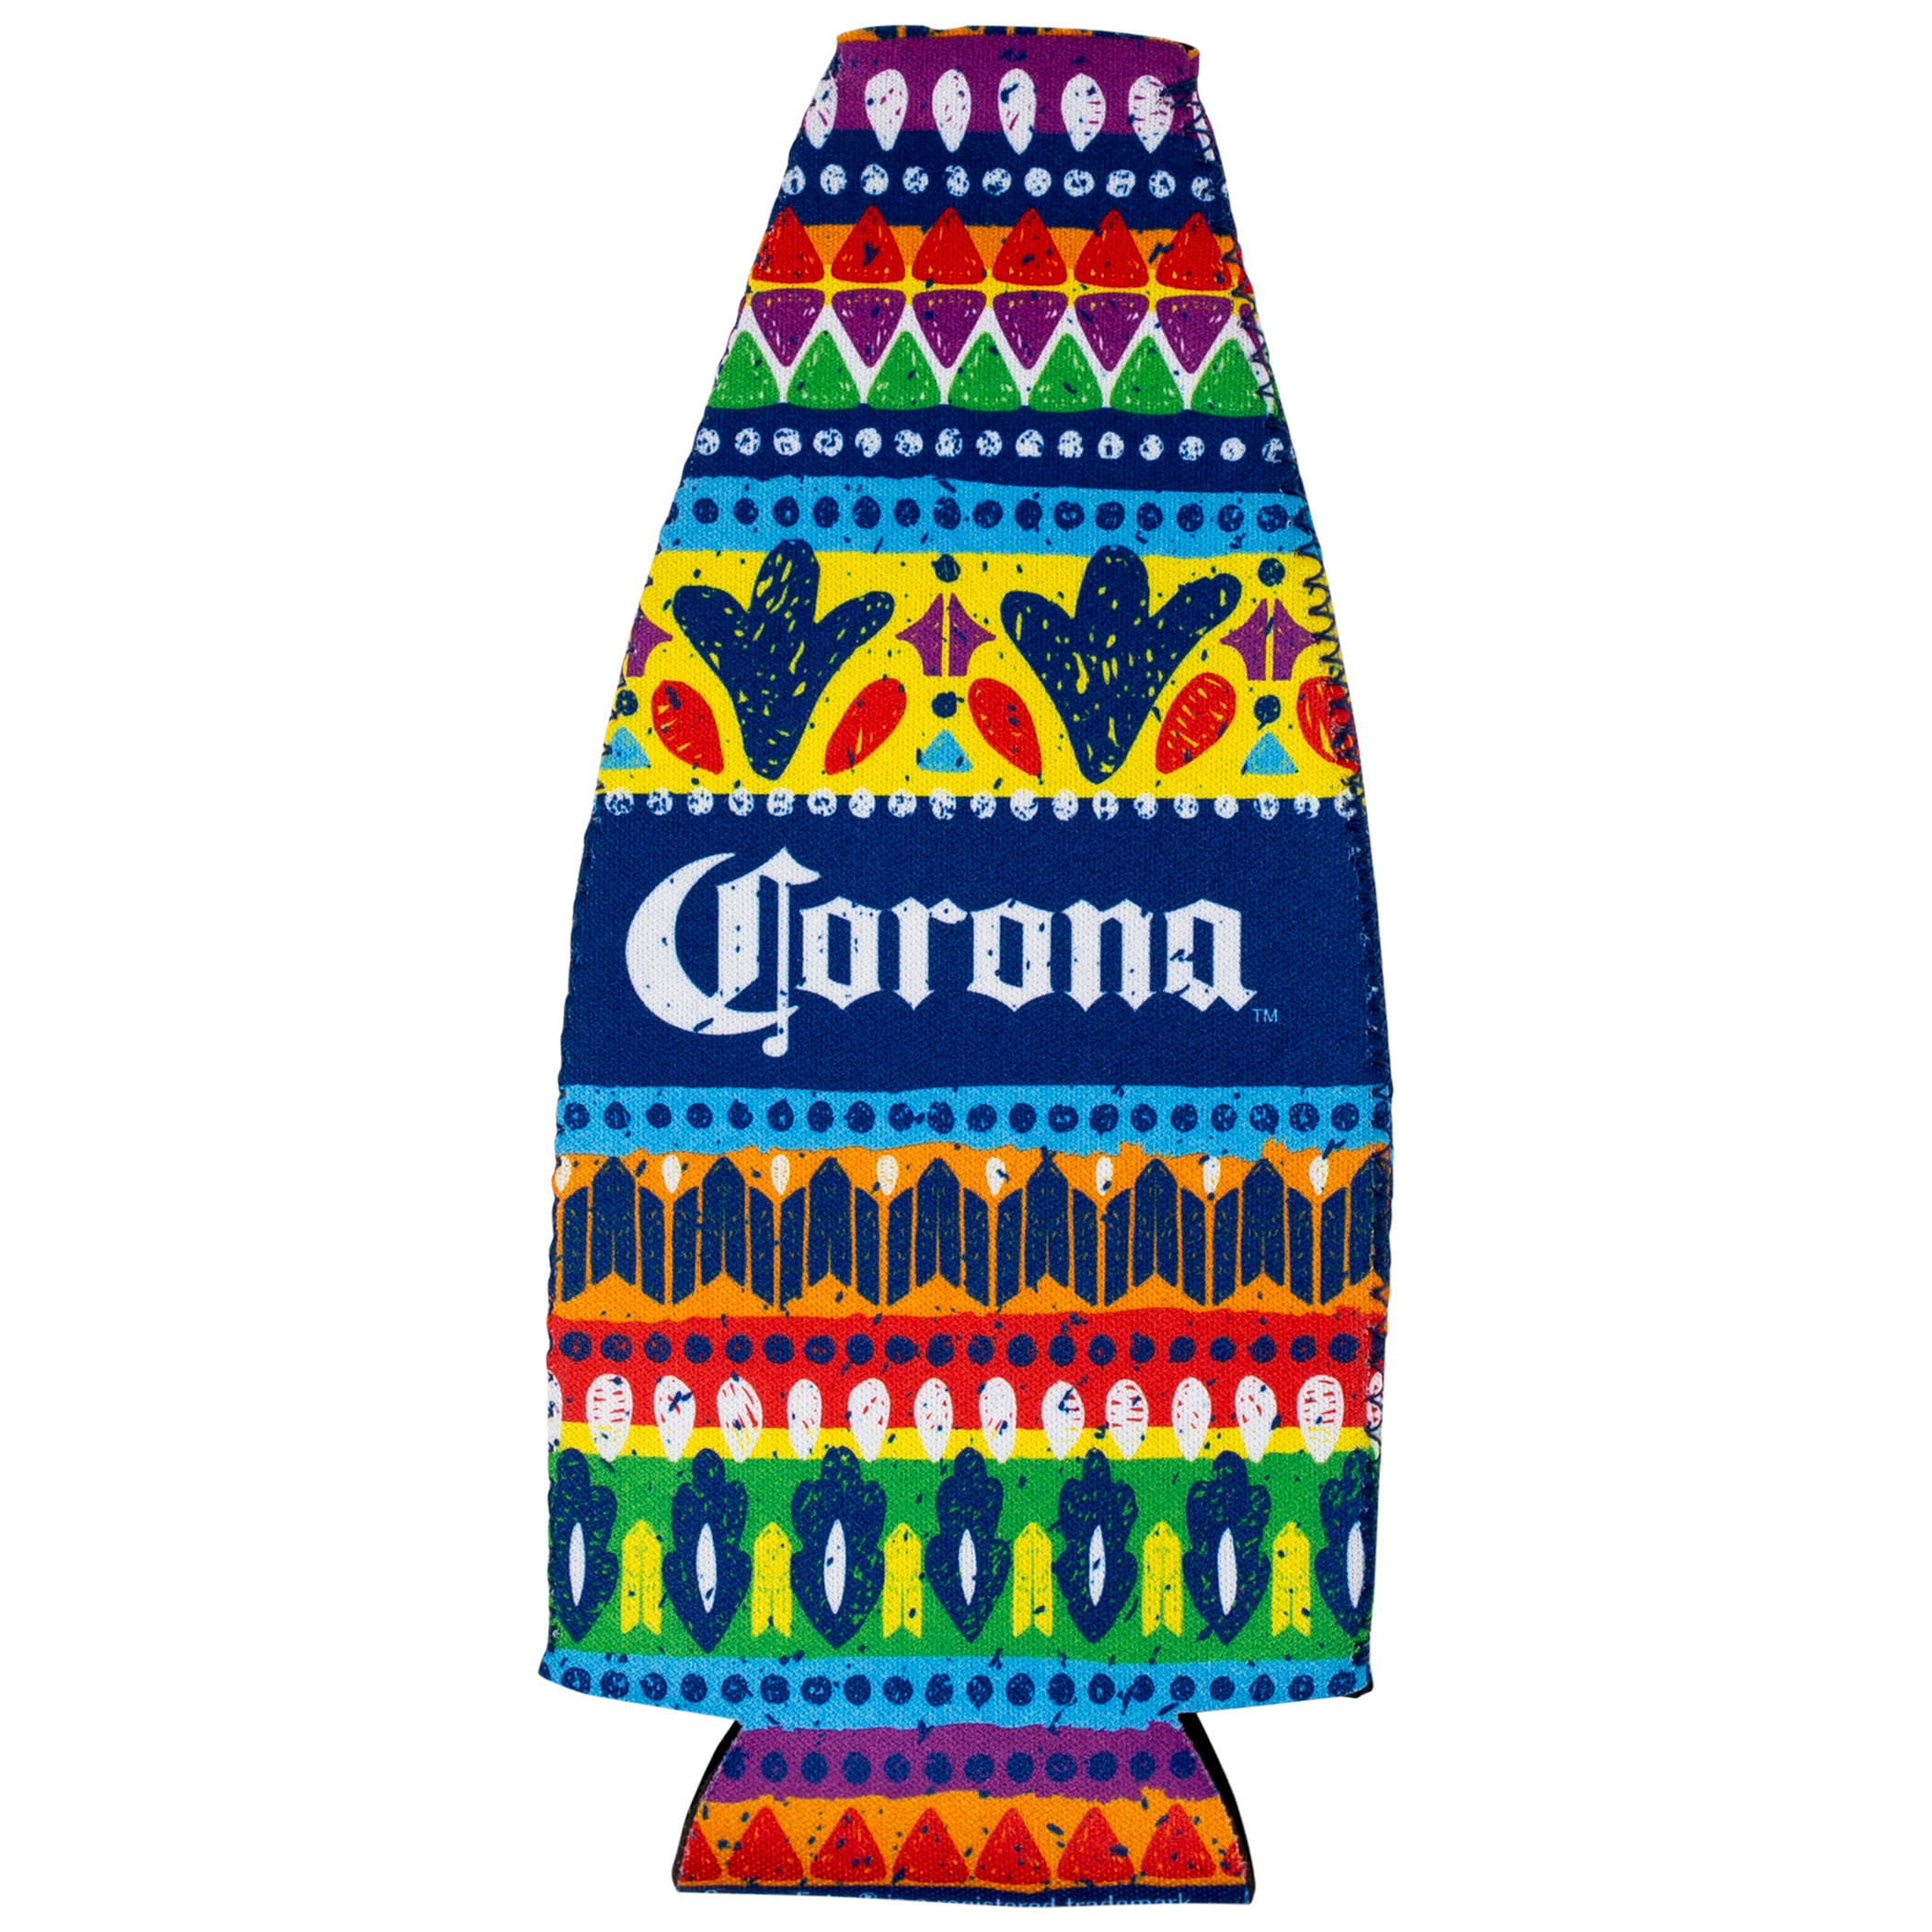 Corona Extra 12 Ounce Colorful Bottle Cooler.